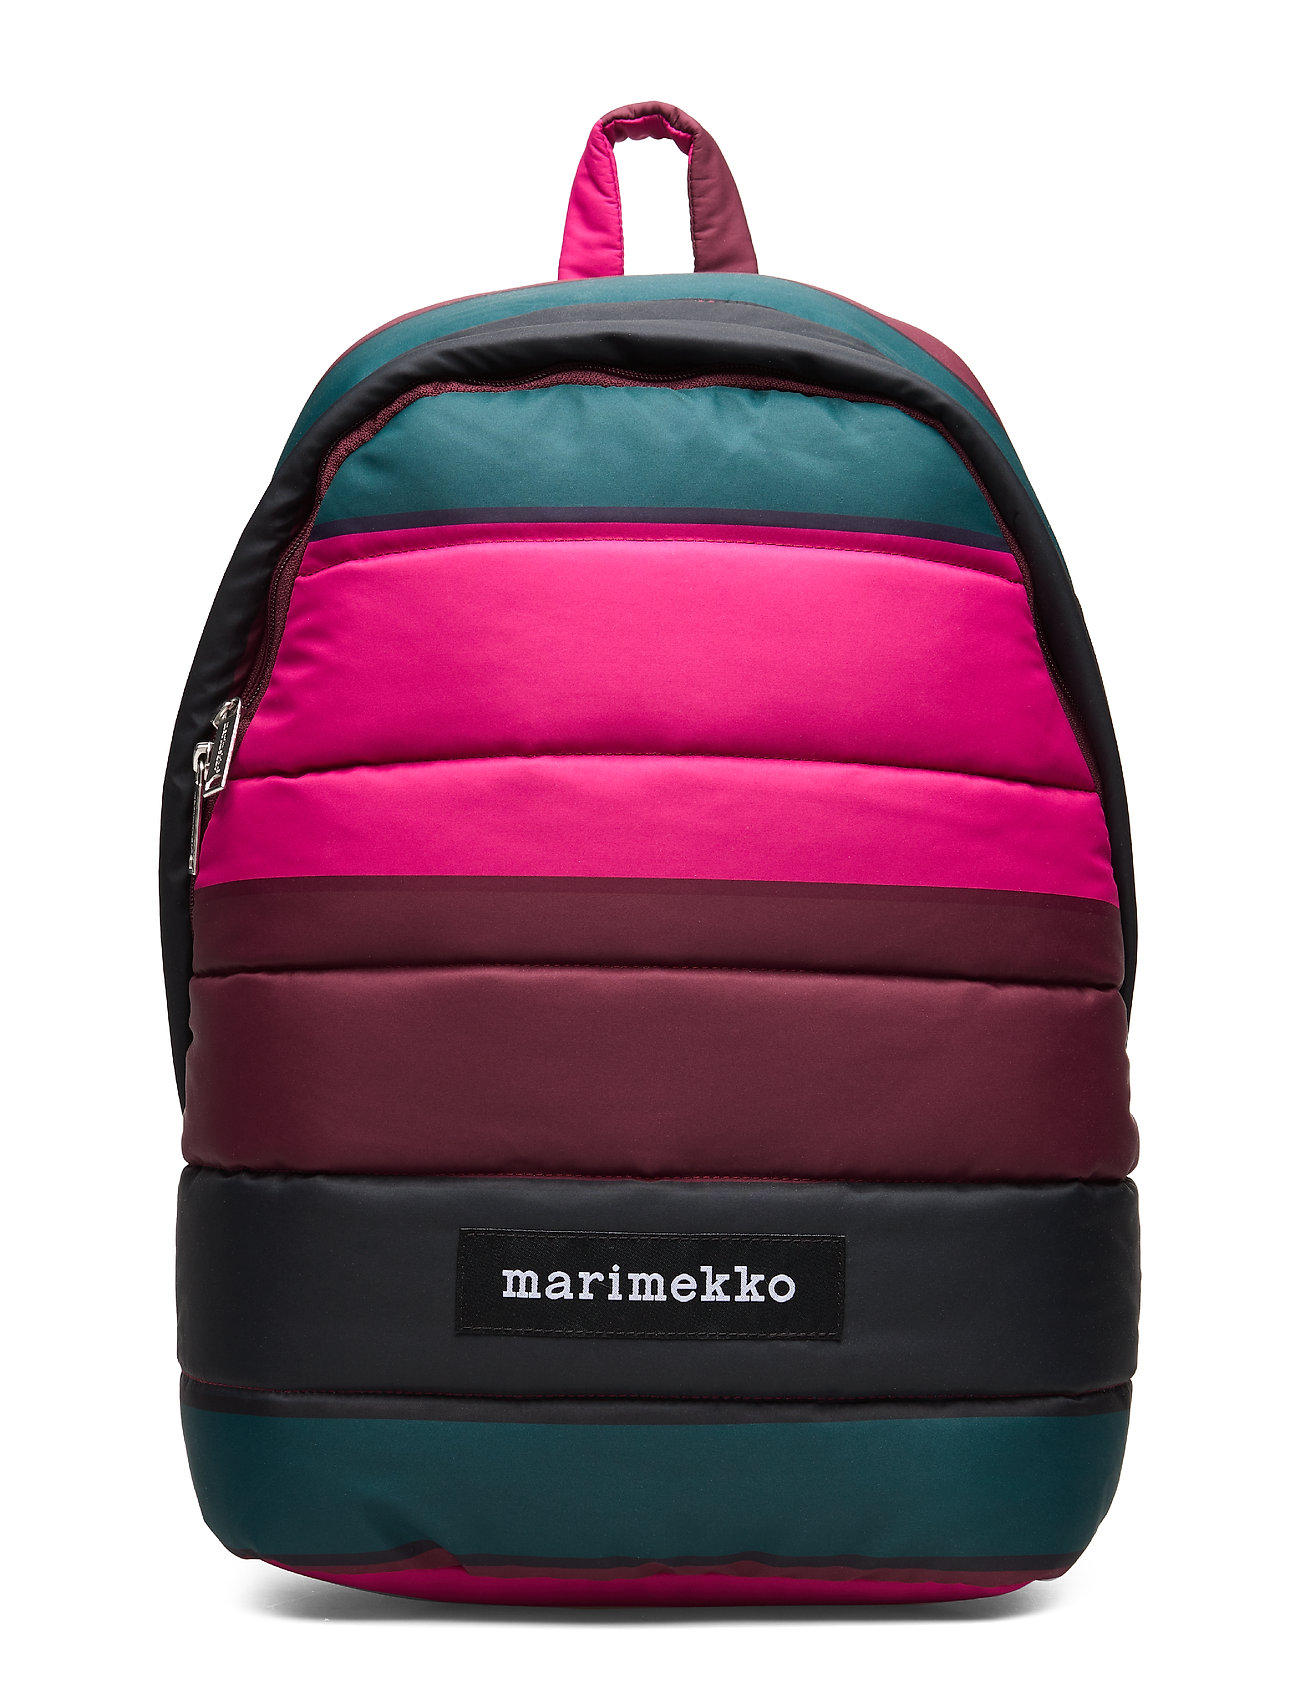 Marimekko LOLLY VIIMA backpack - PINK,DARK GREEN,BLACK